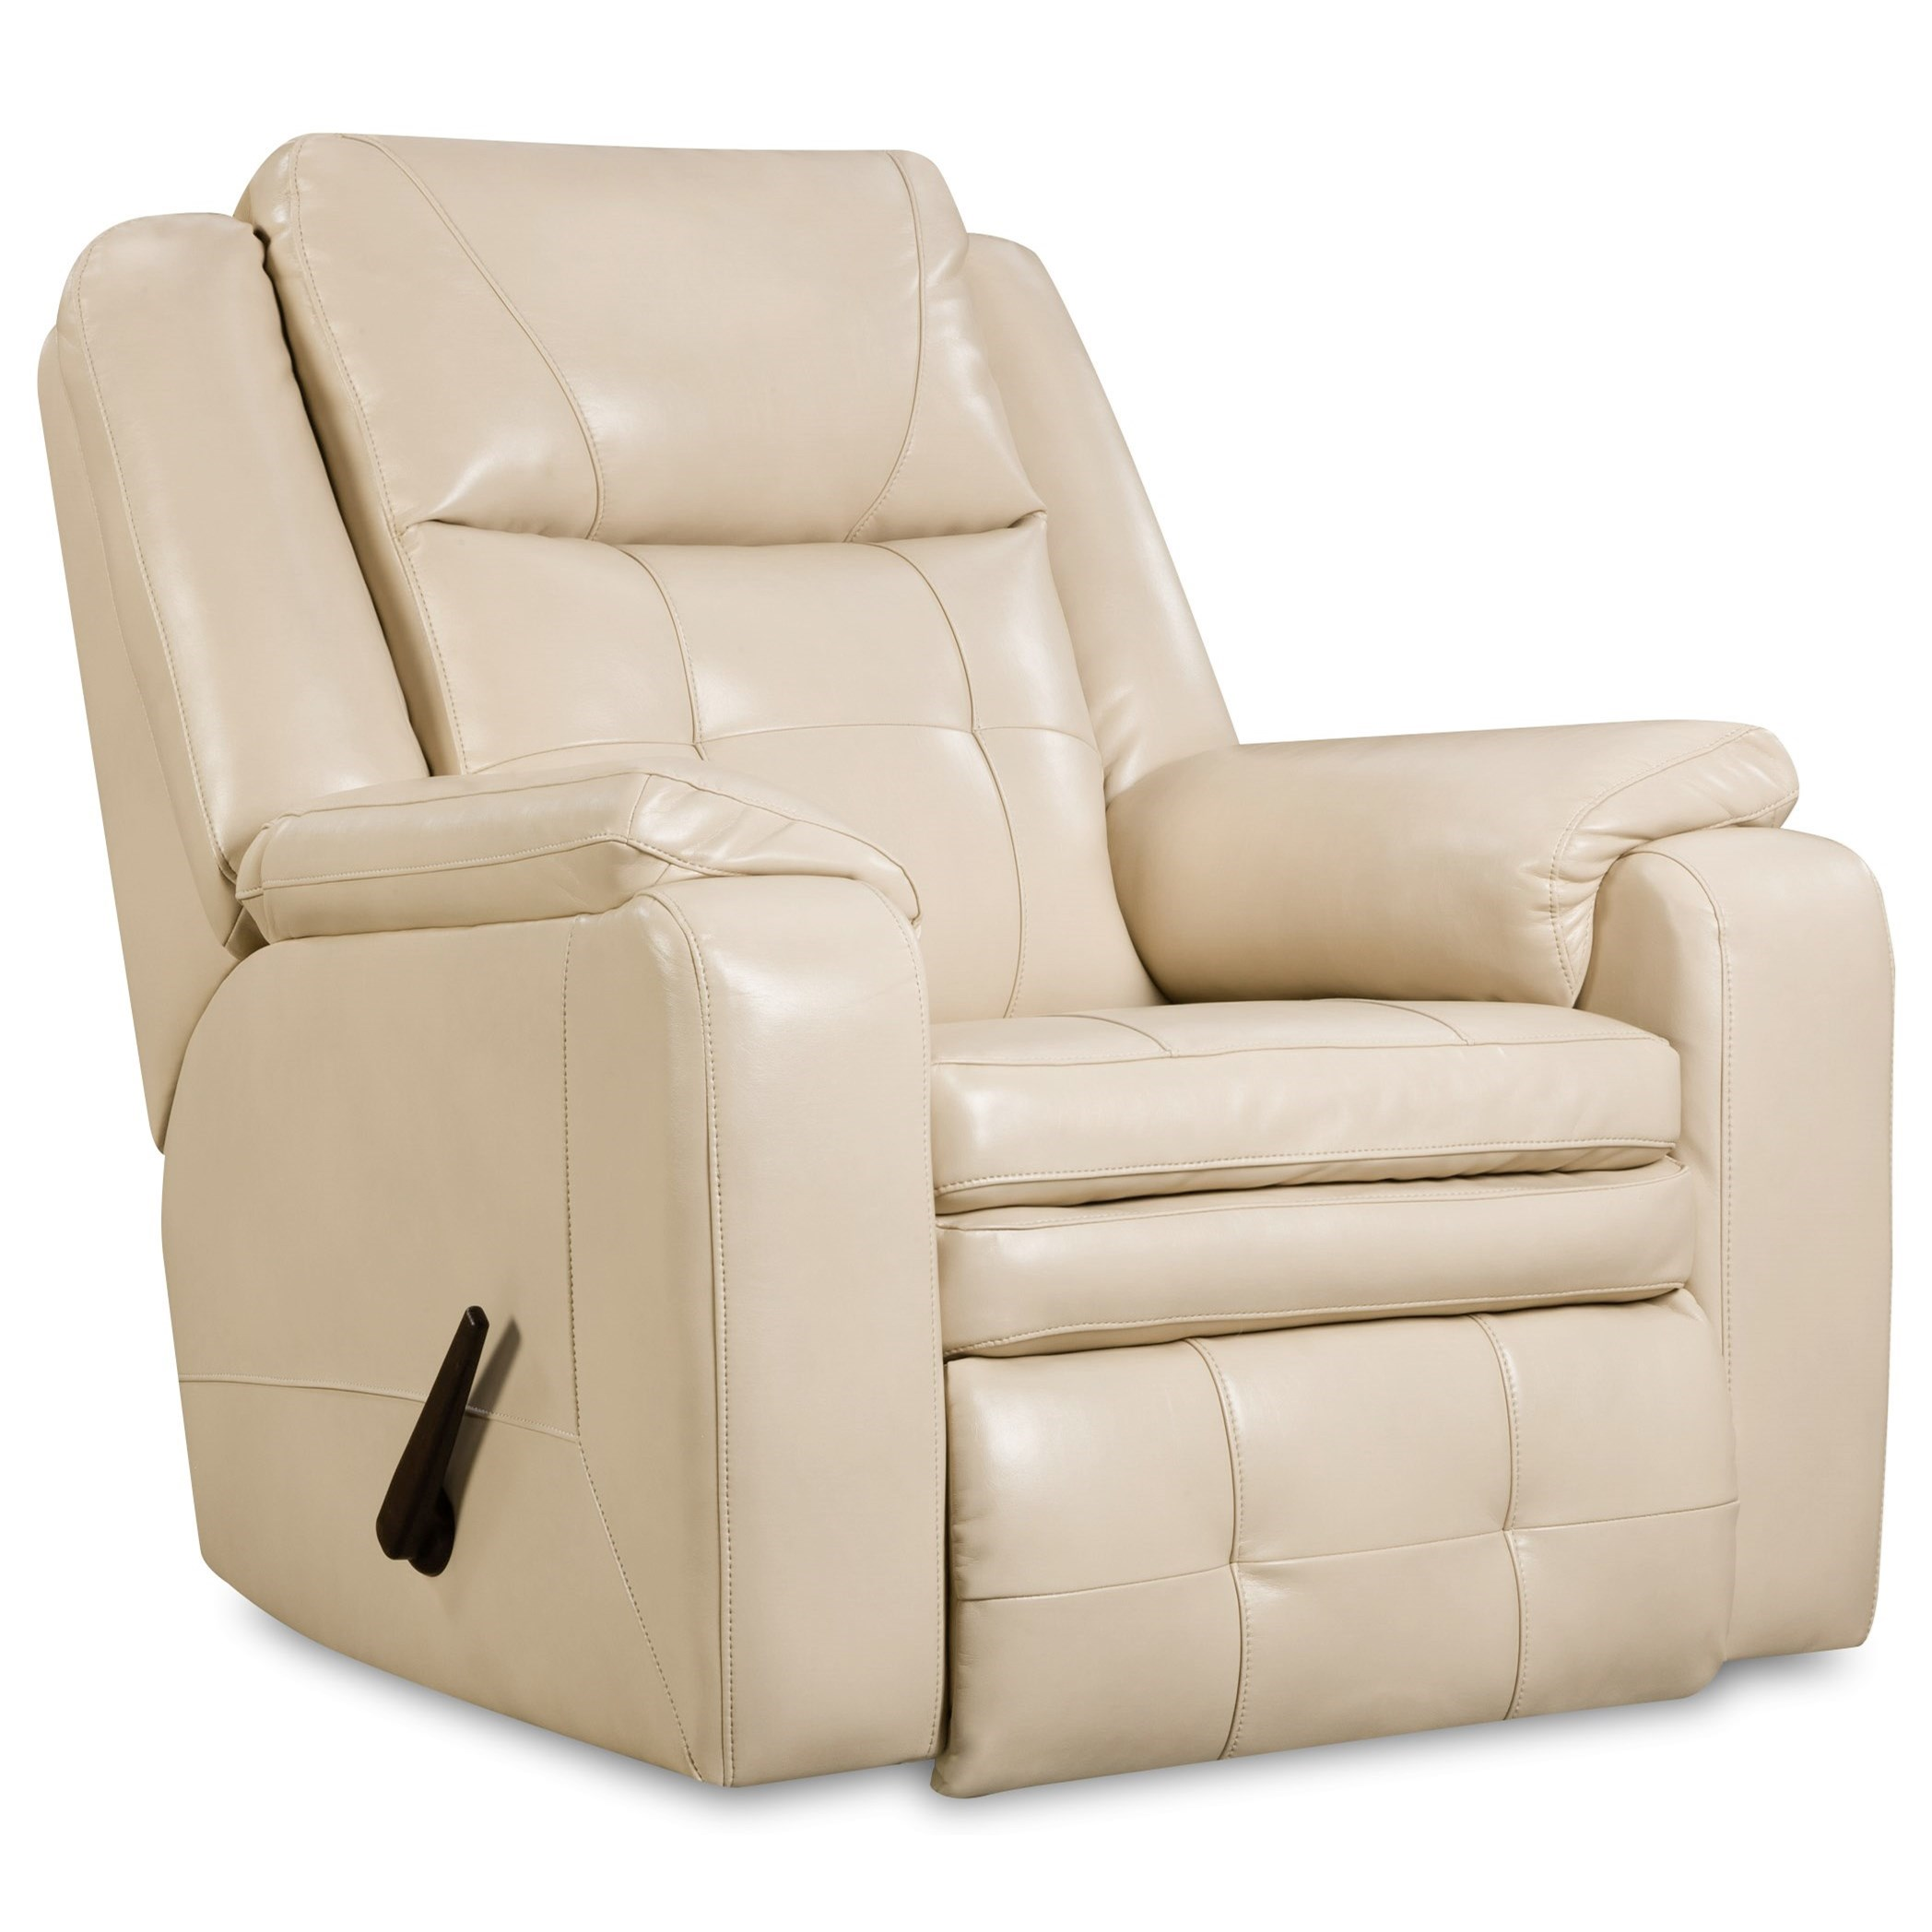 Inspire Swivel Rocker Recliner by Southern Motion at Esprit Decor Home Furnishings